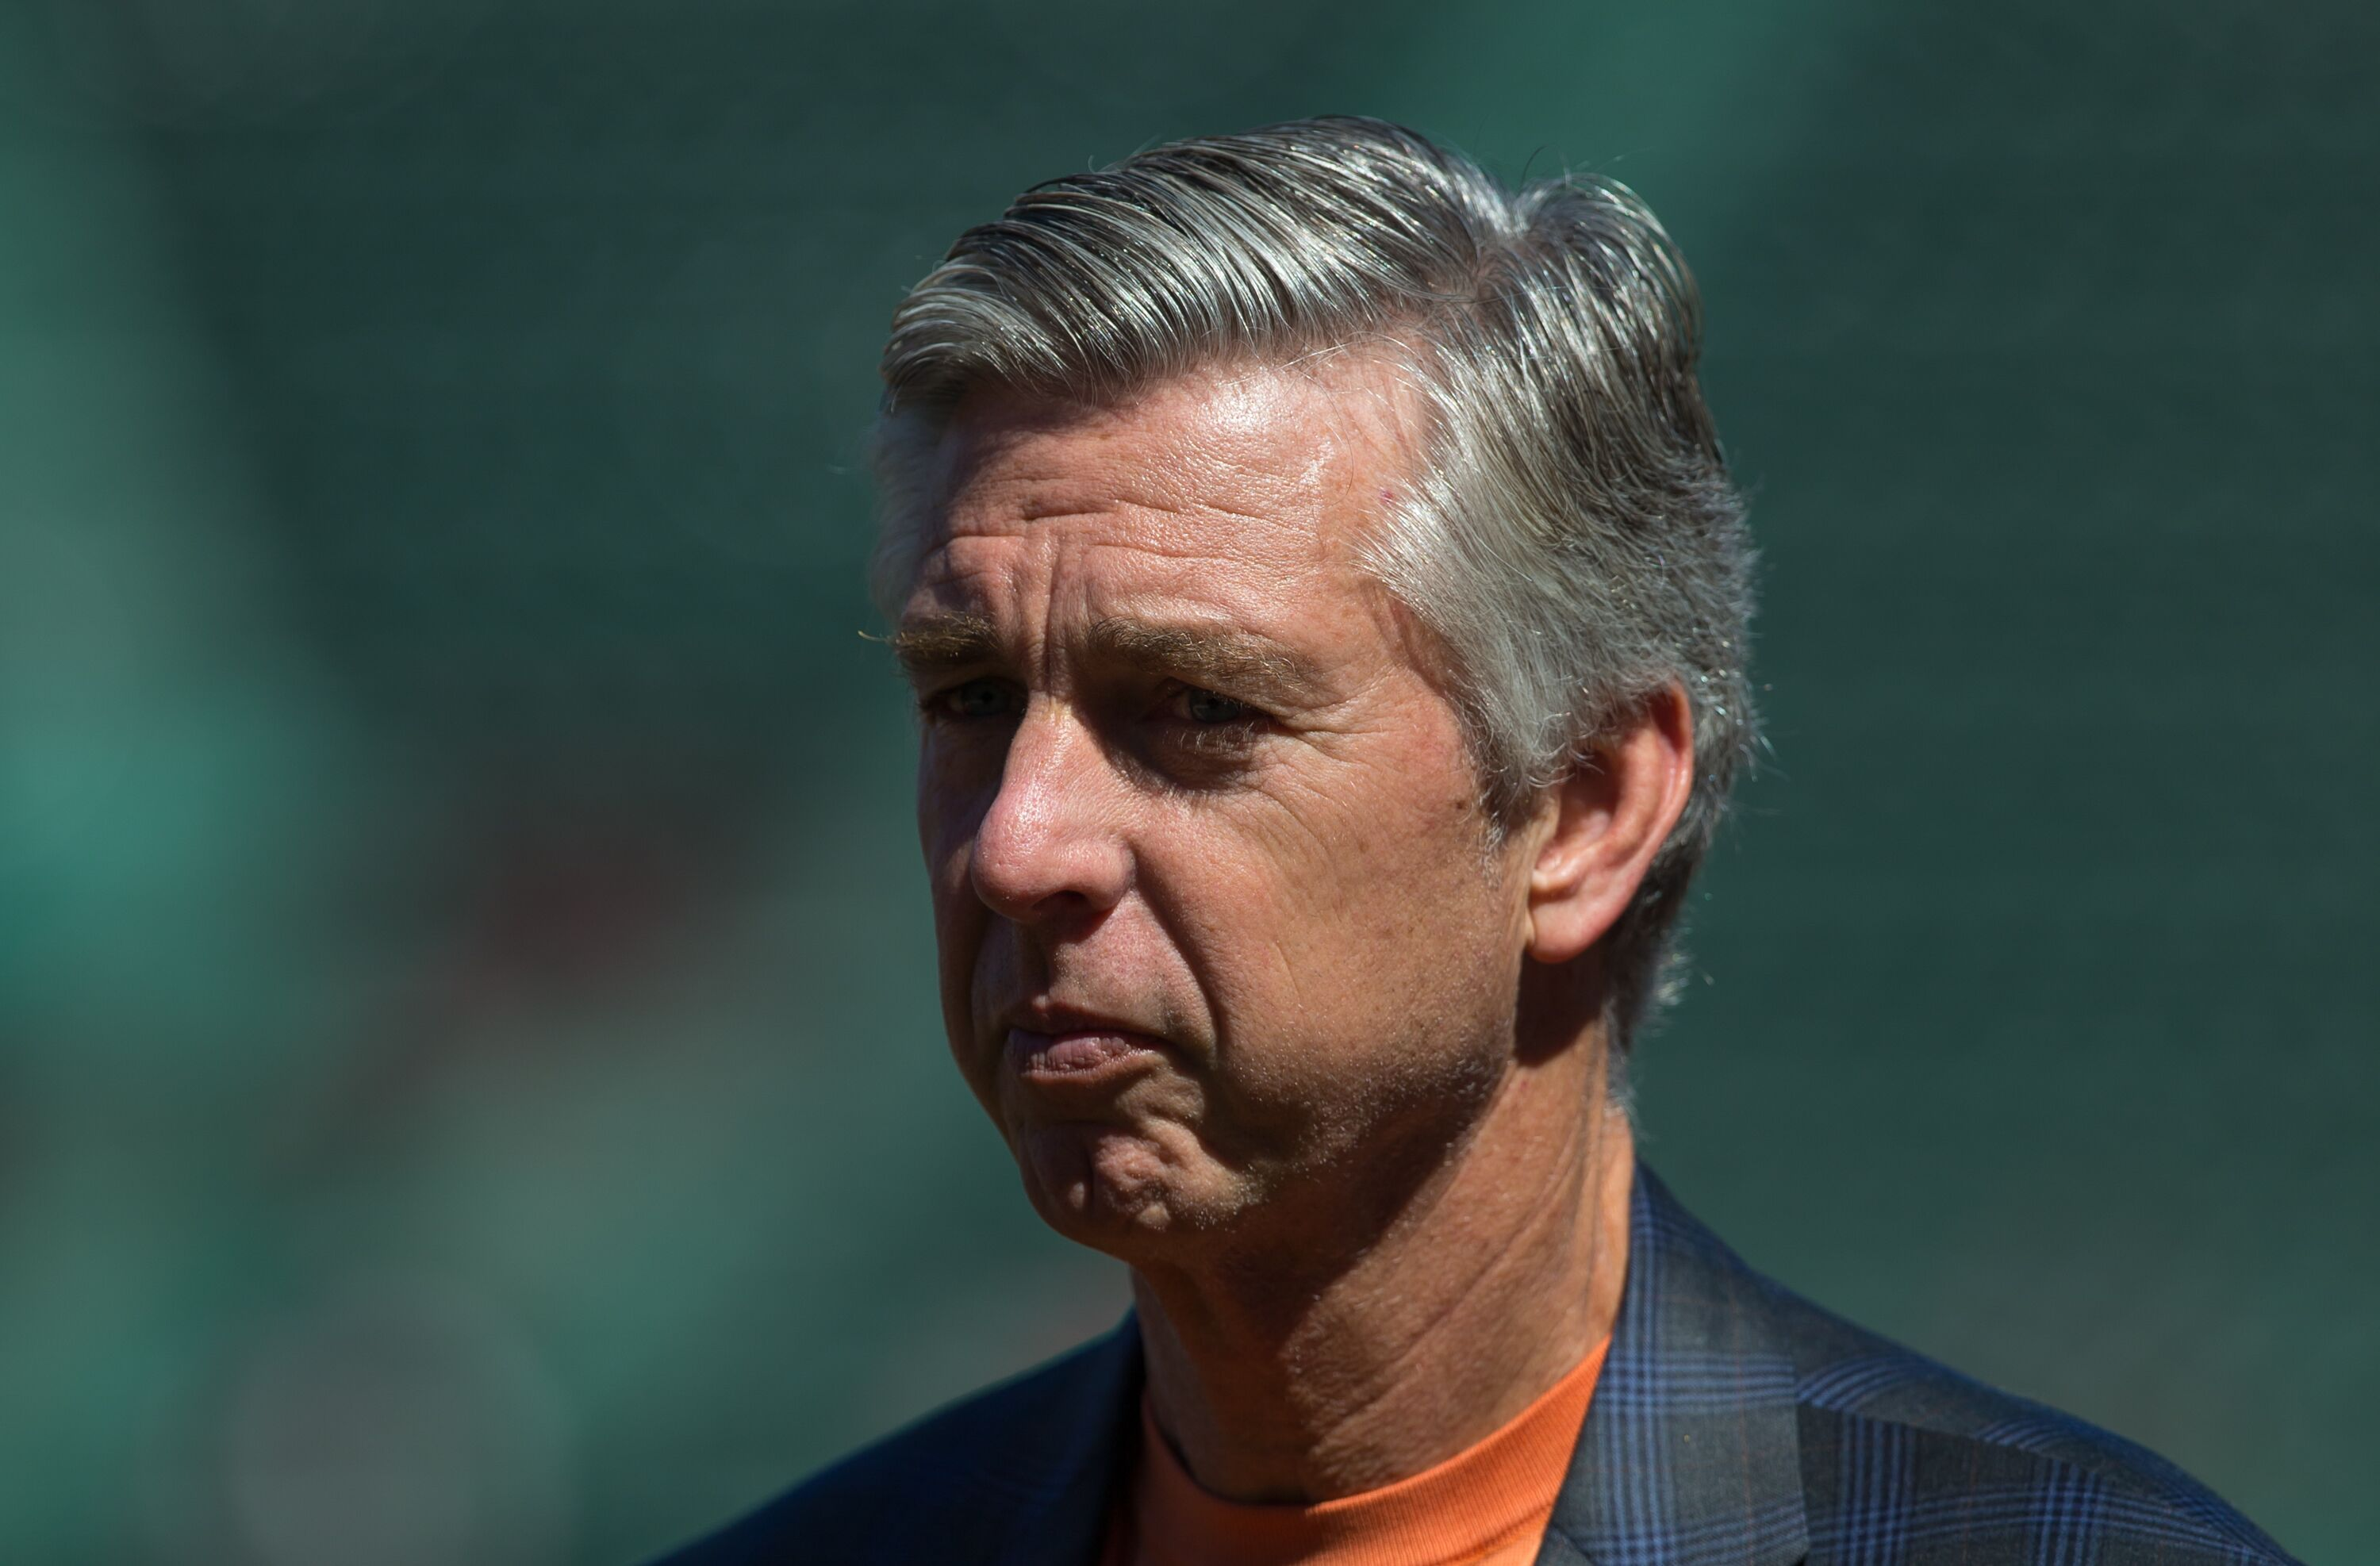 Are we sure that being the Red Sox general manager is a desirable job?